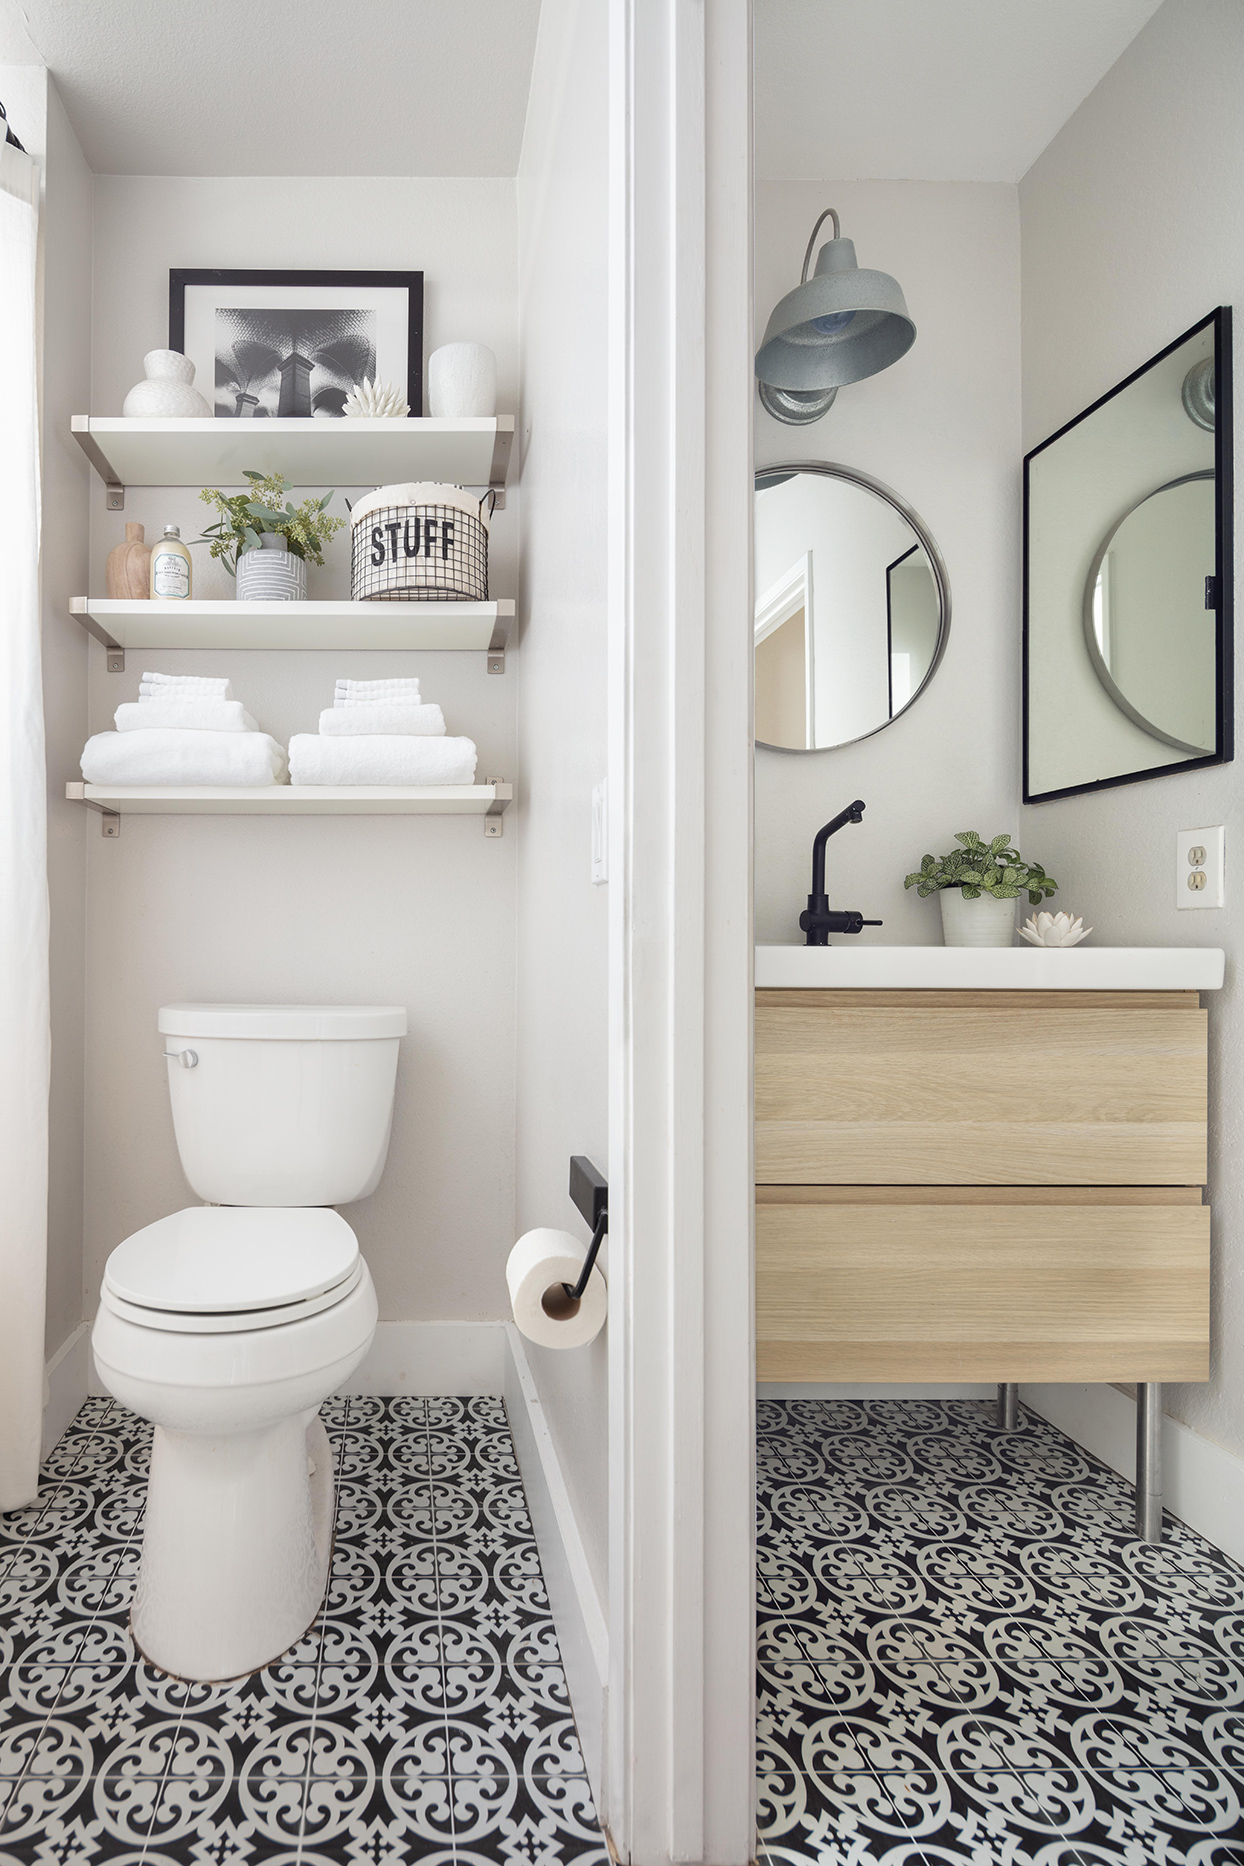 small bathroom with black and white tiled floor